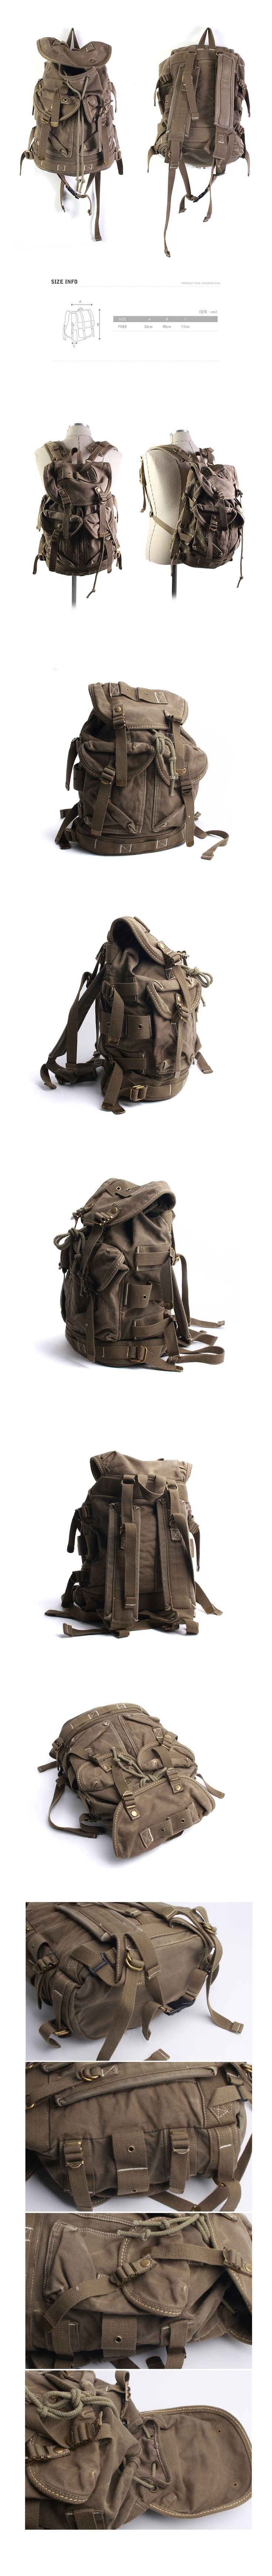 Vintage Canvas Outdoor Military Rucksack Backpack Travel Bag